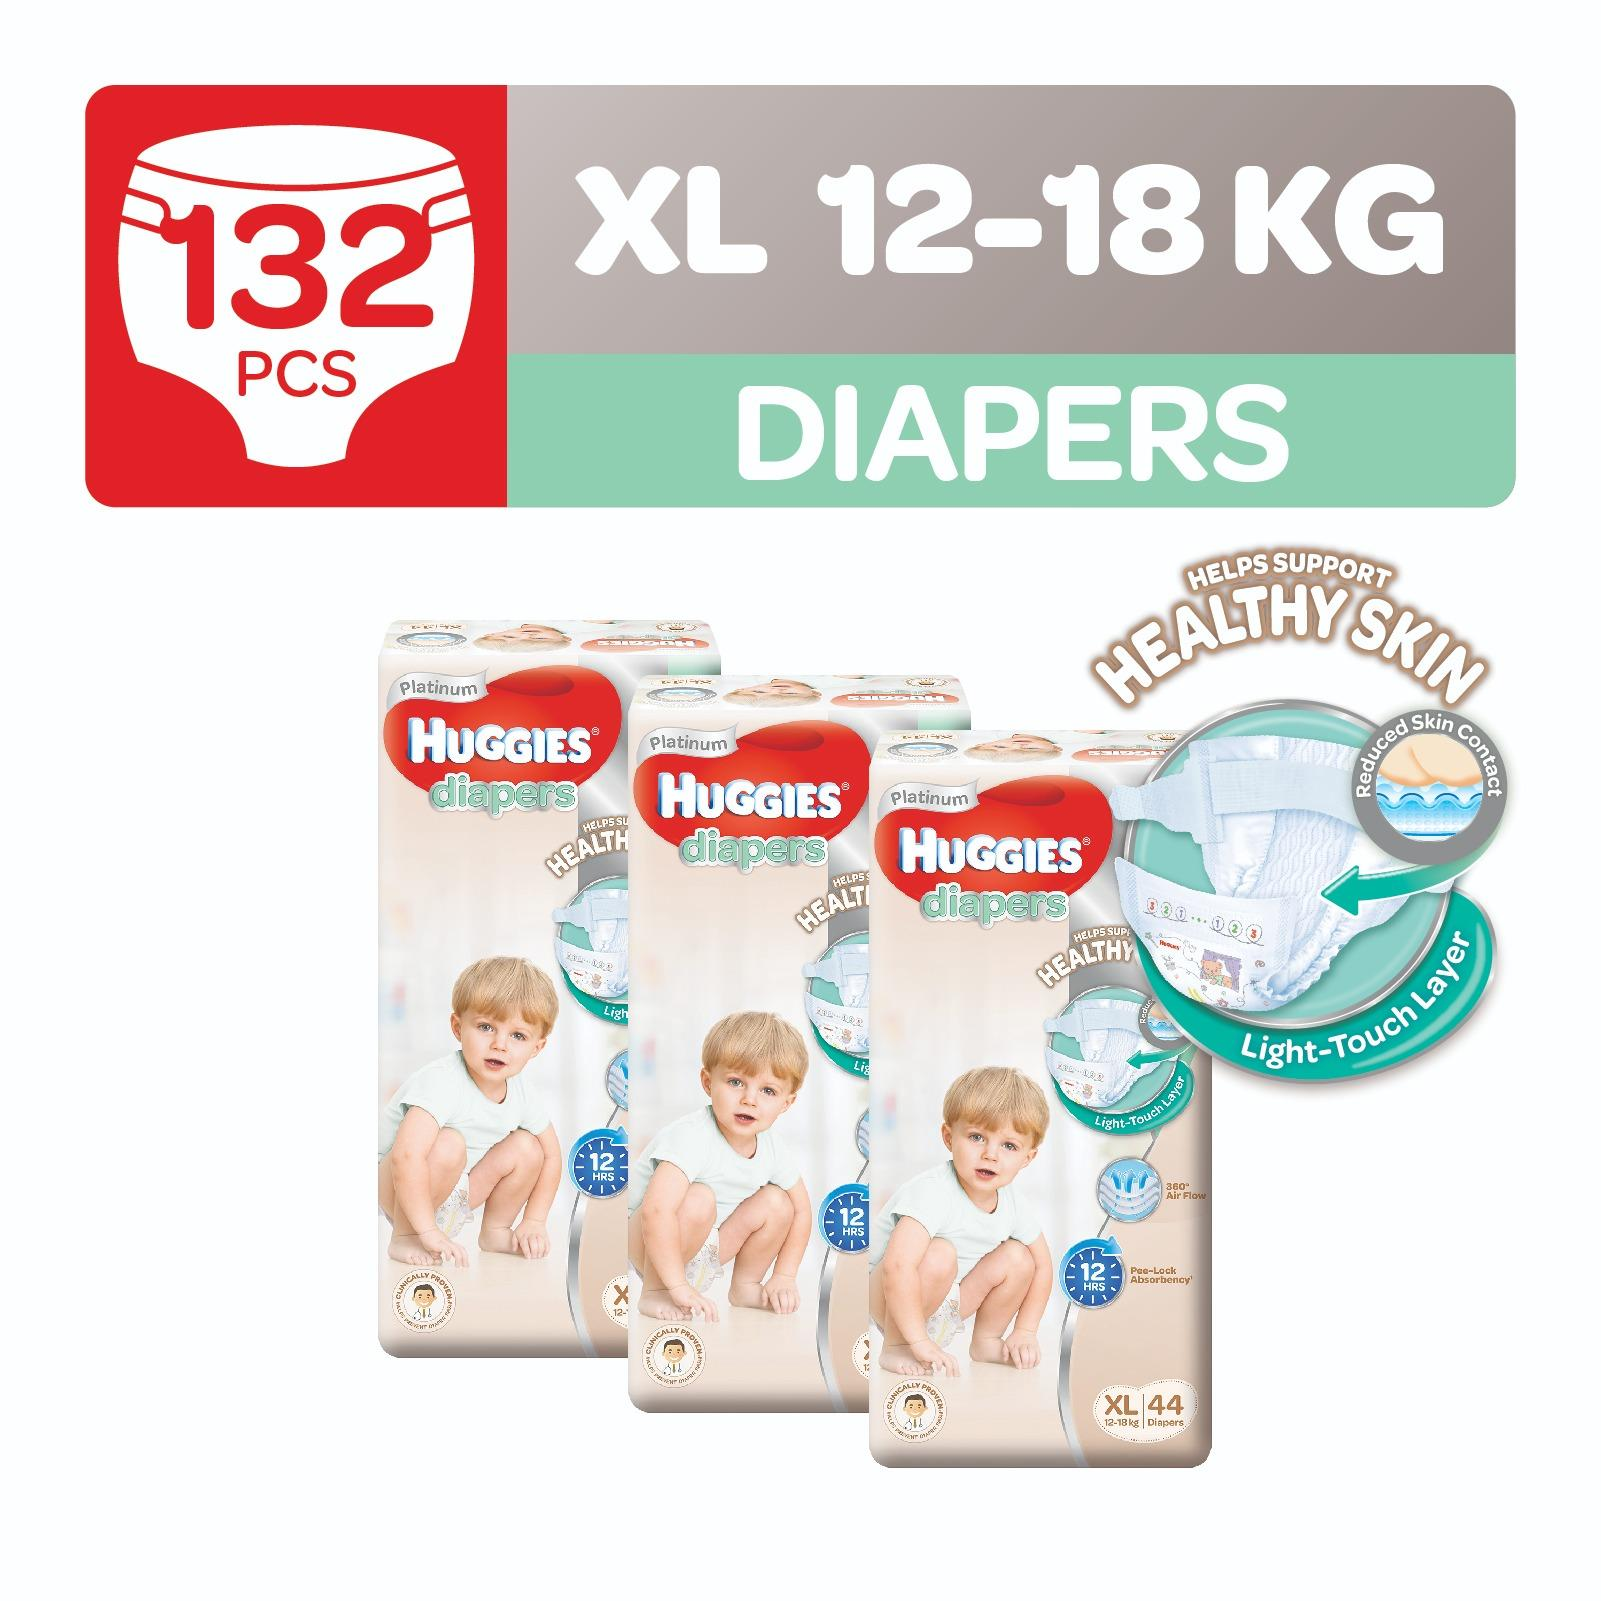 Shop For Huggies Platinum Diapers Xl 44Pcs X 3 Packs